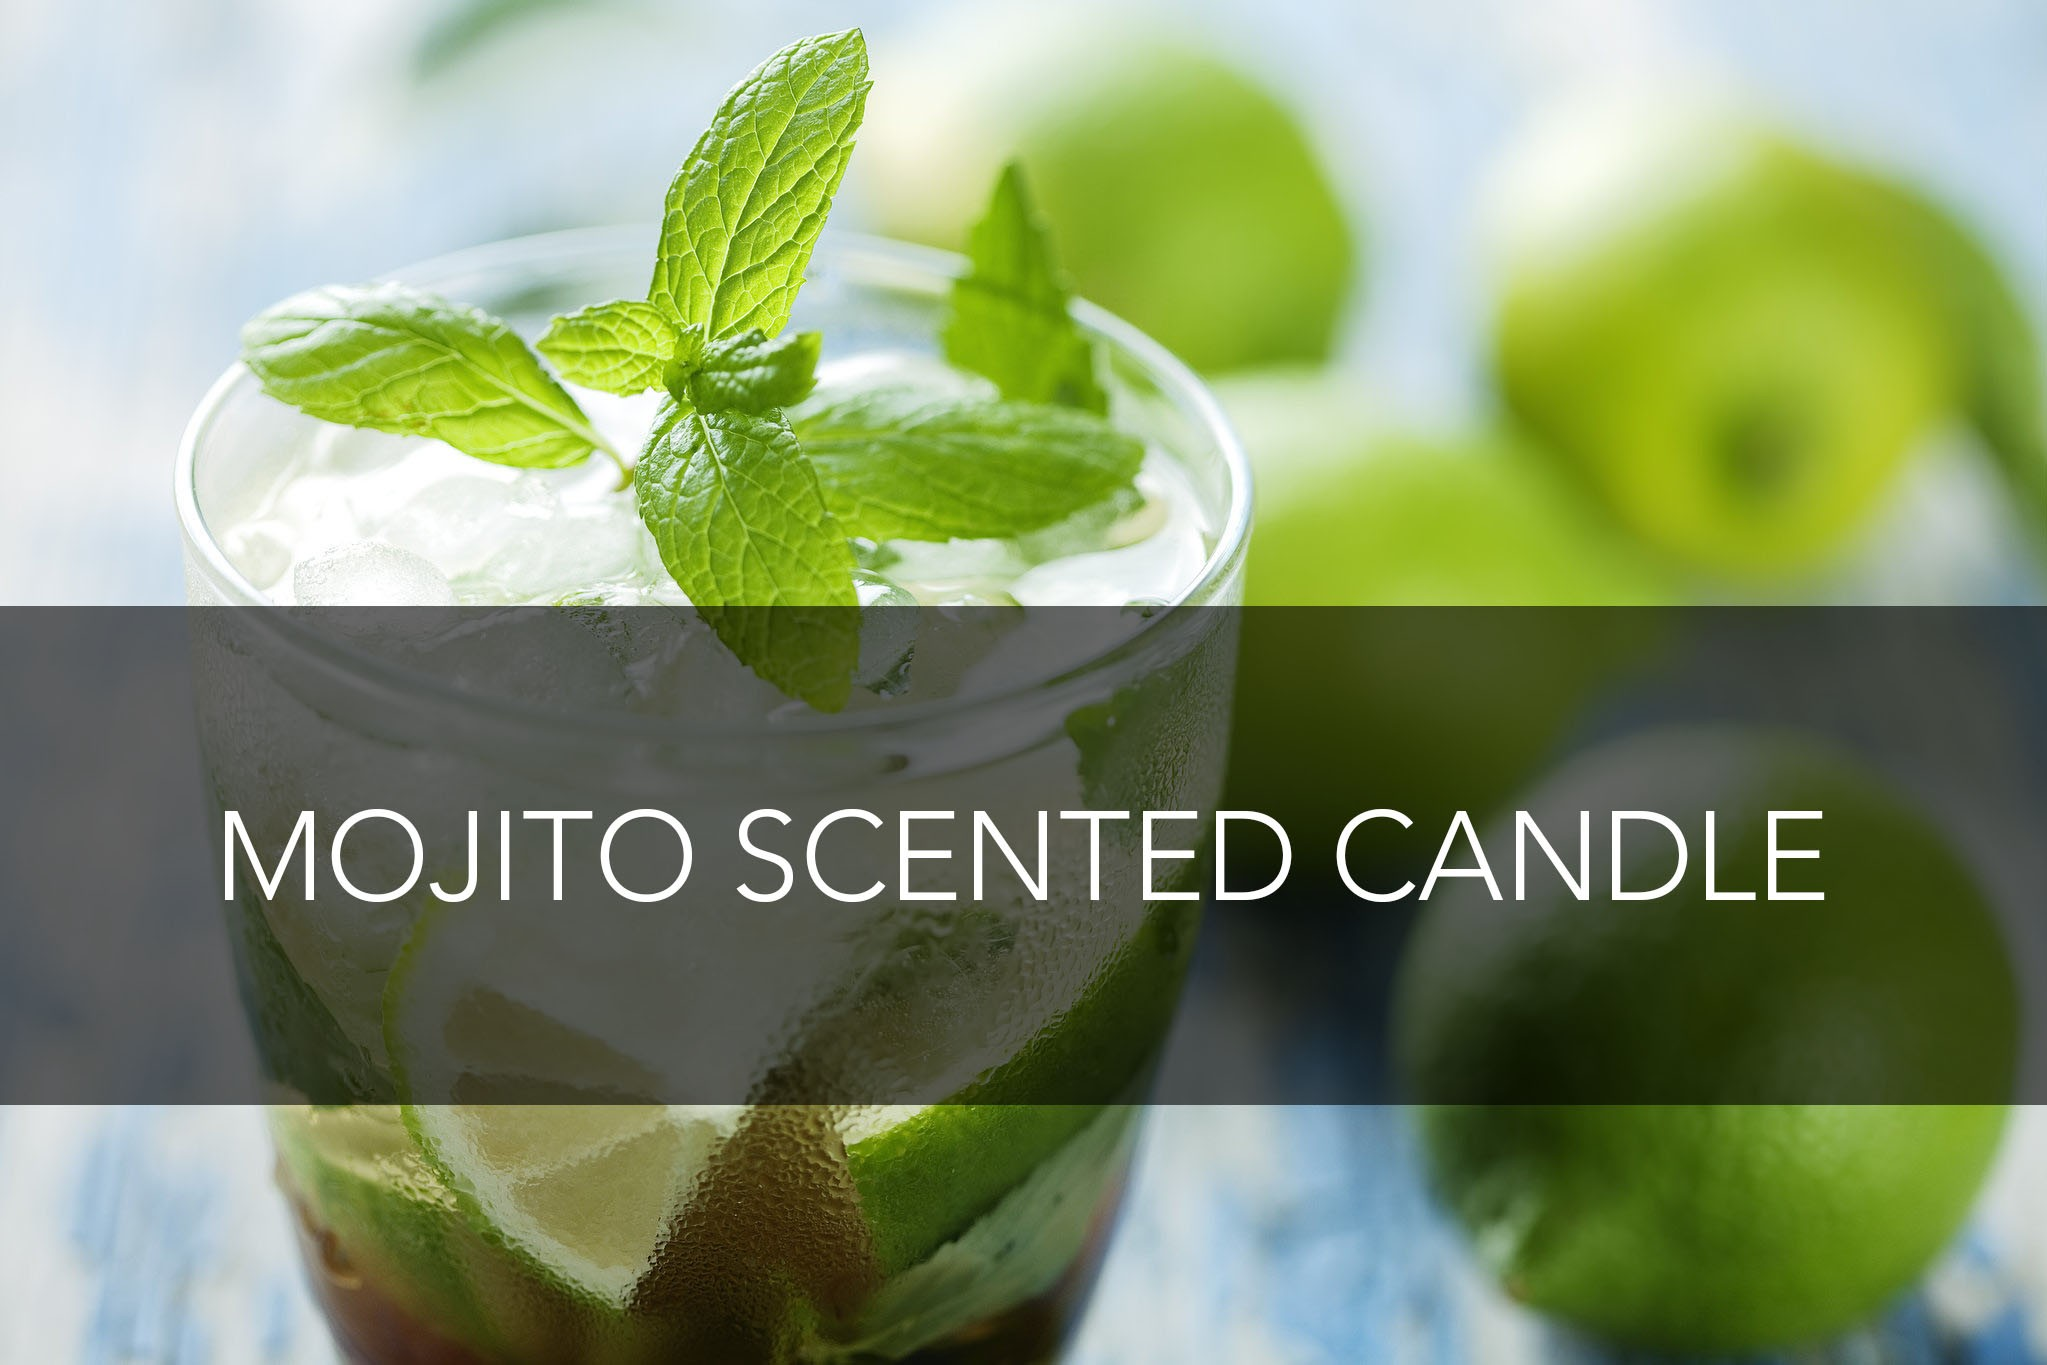 Scented candles that smell like a glass of mojito